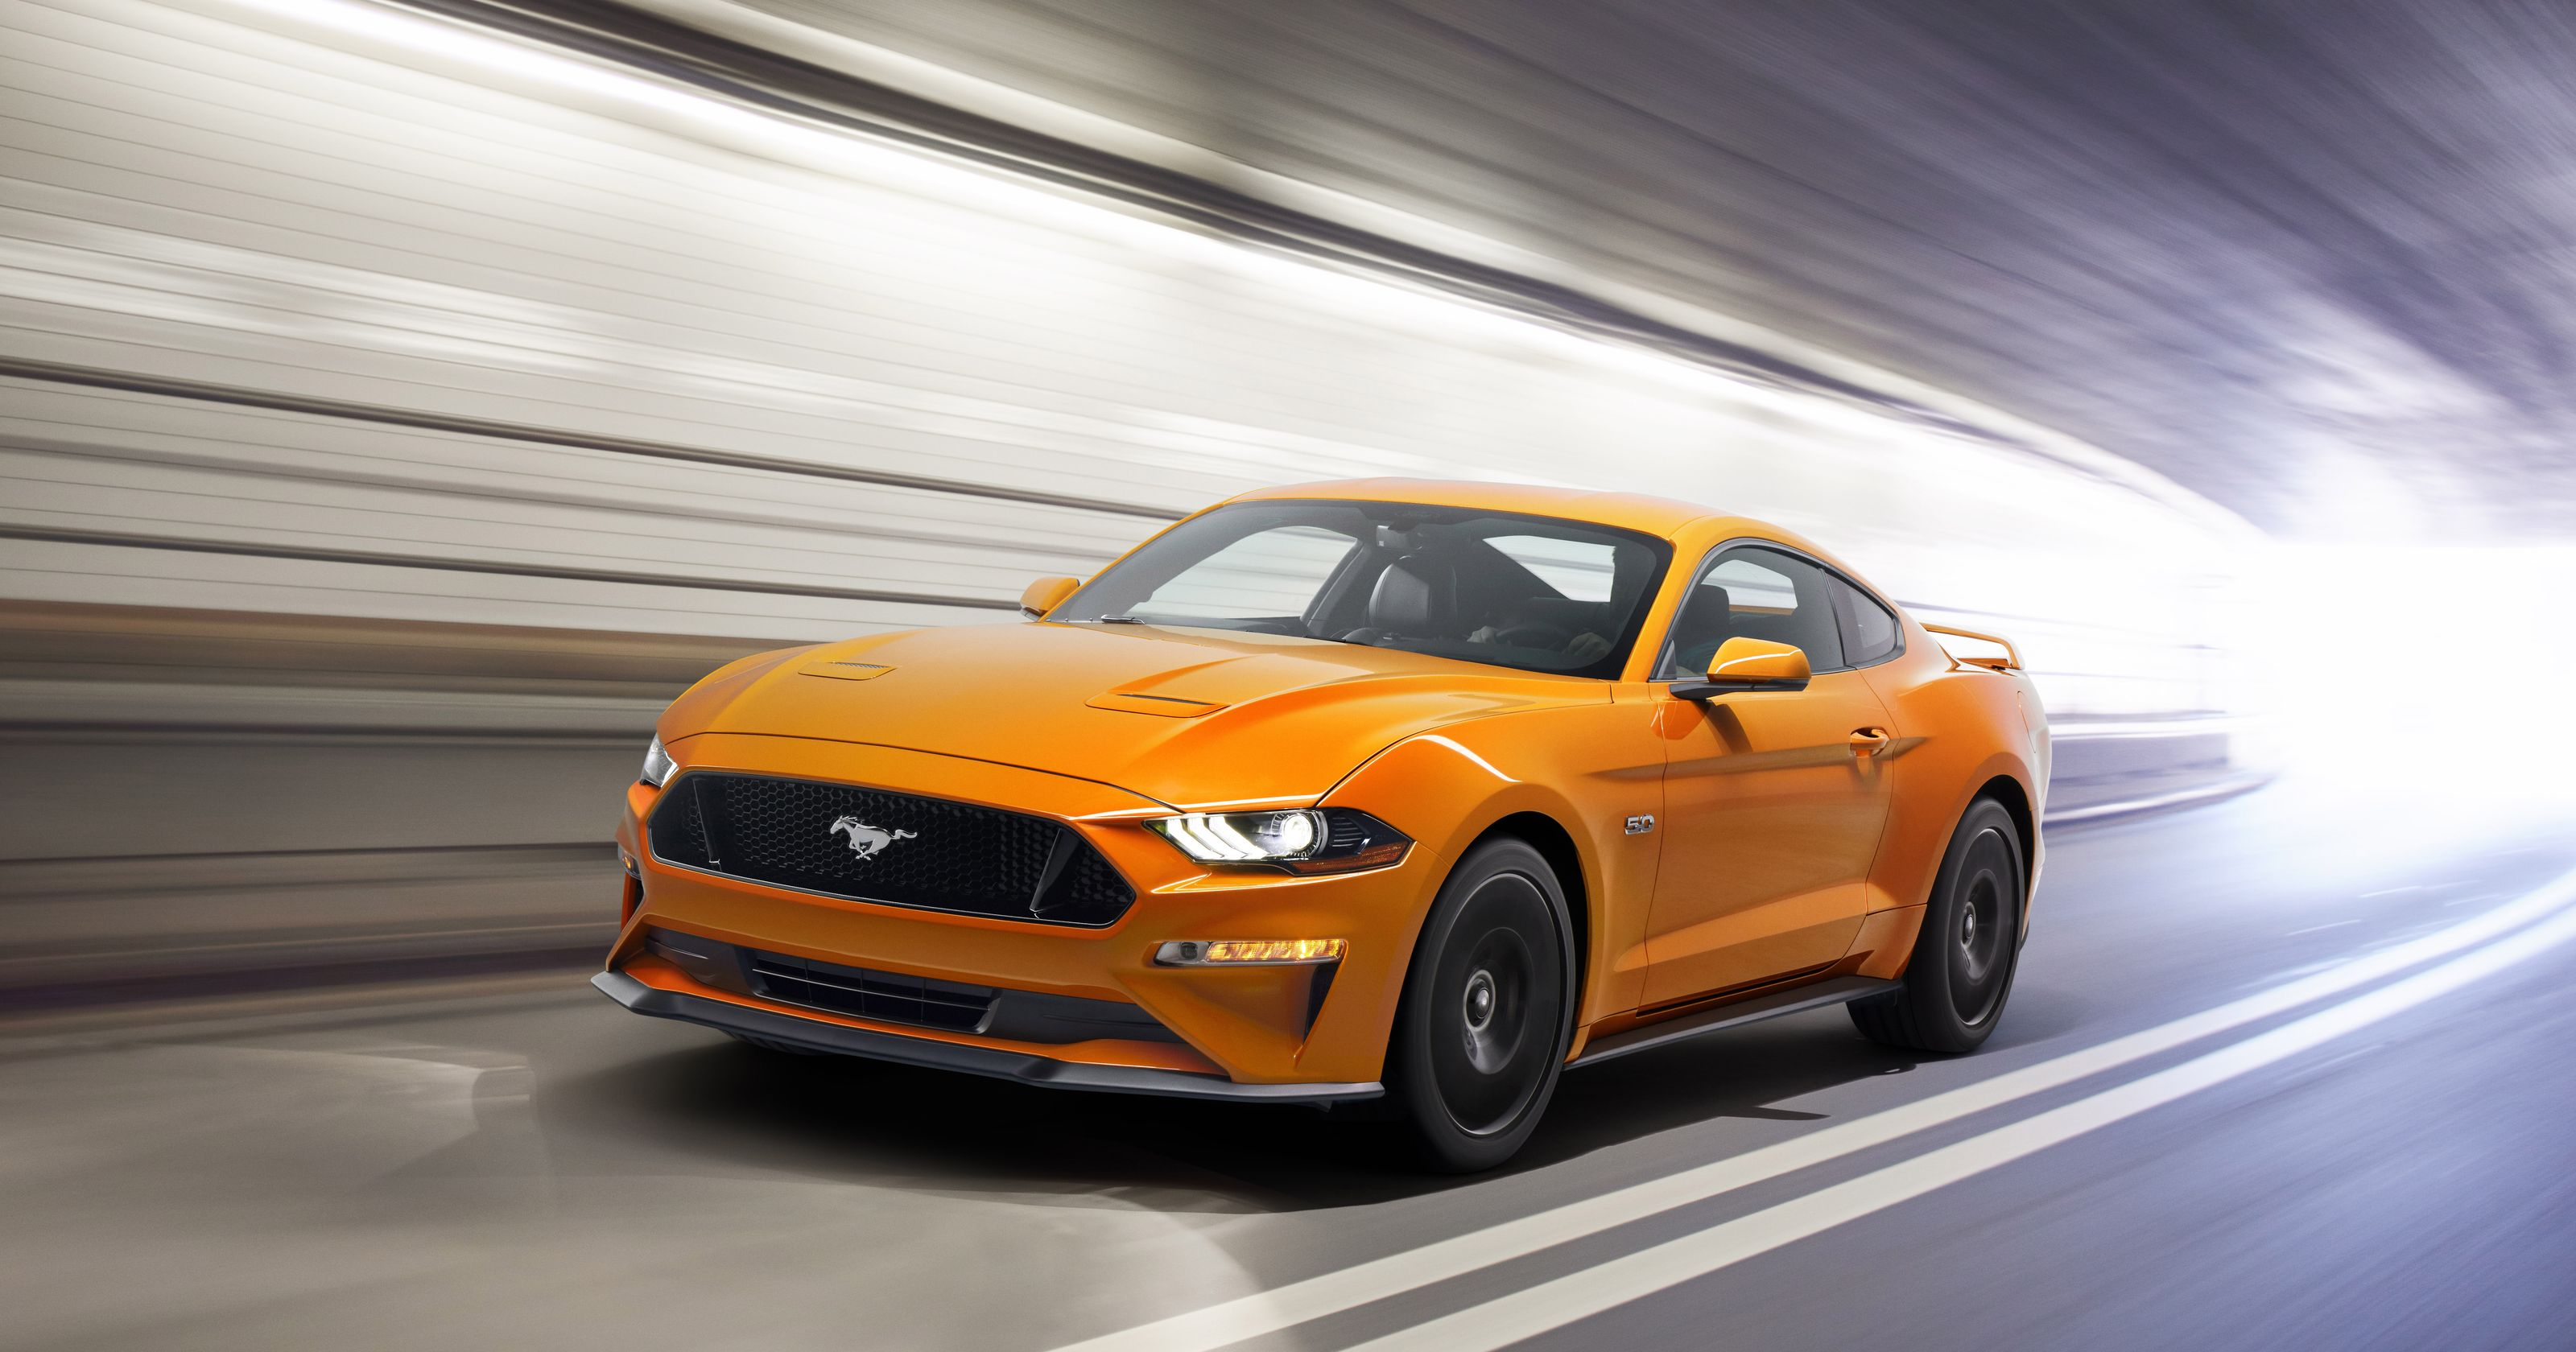 2018 Ford Mustang GT (1280x1024 Resolution)